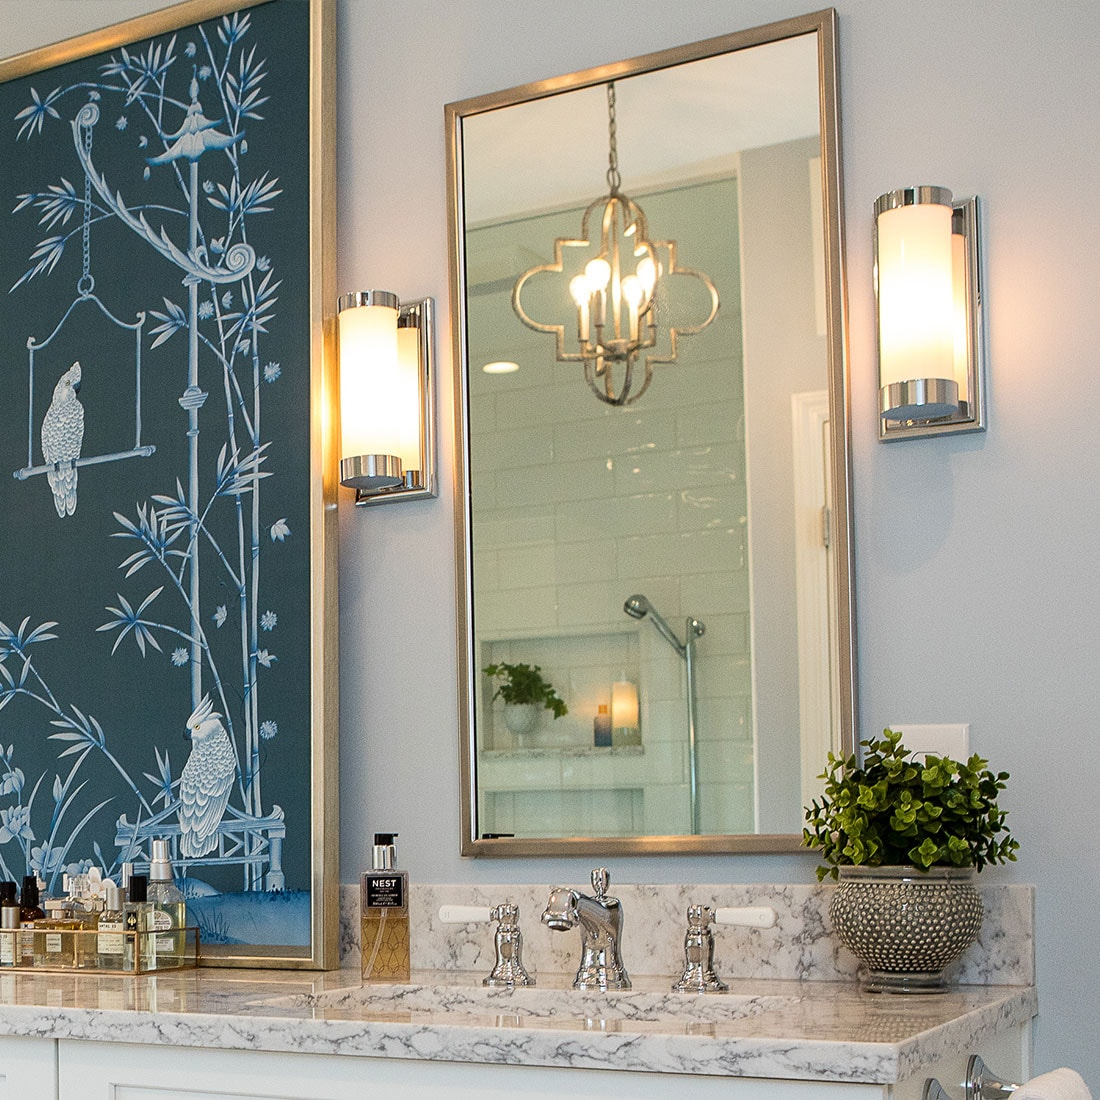 reflection on unique brass pendant light in renovated bath